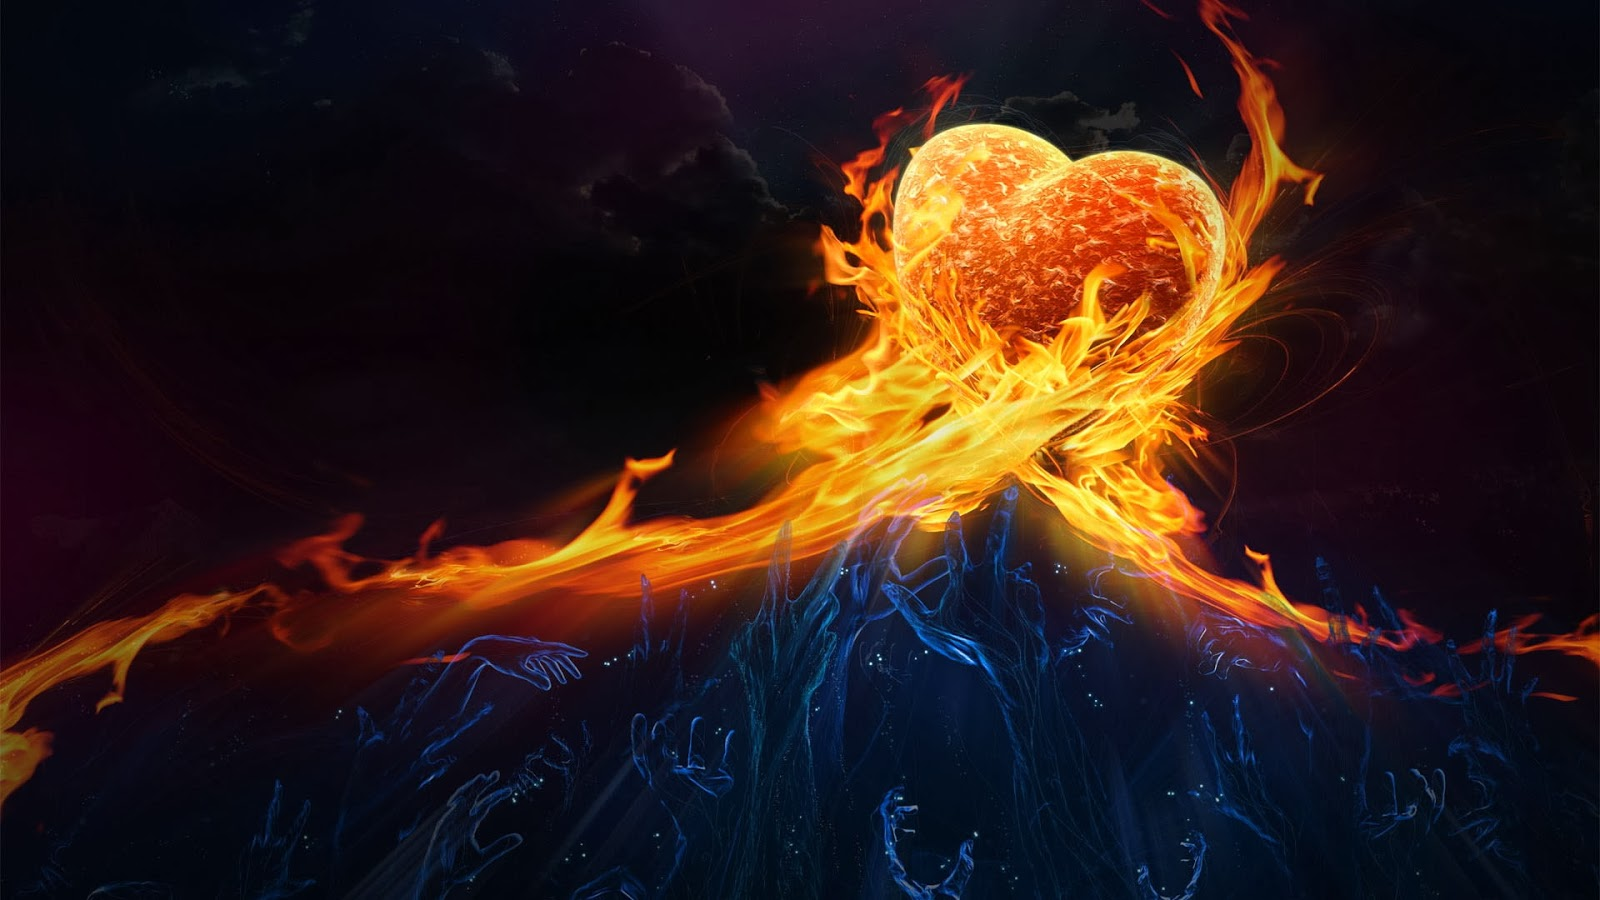 Hot girl wallpaper heart with fire love wallpapers images heart with fire love wallpapers images pictures photos gallery free download buycottarizona Image collections